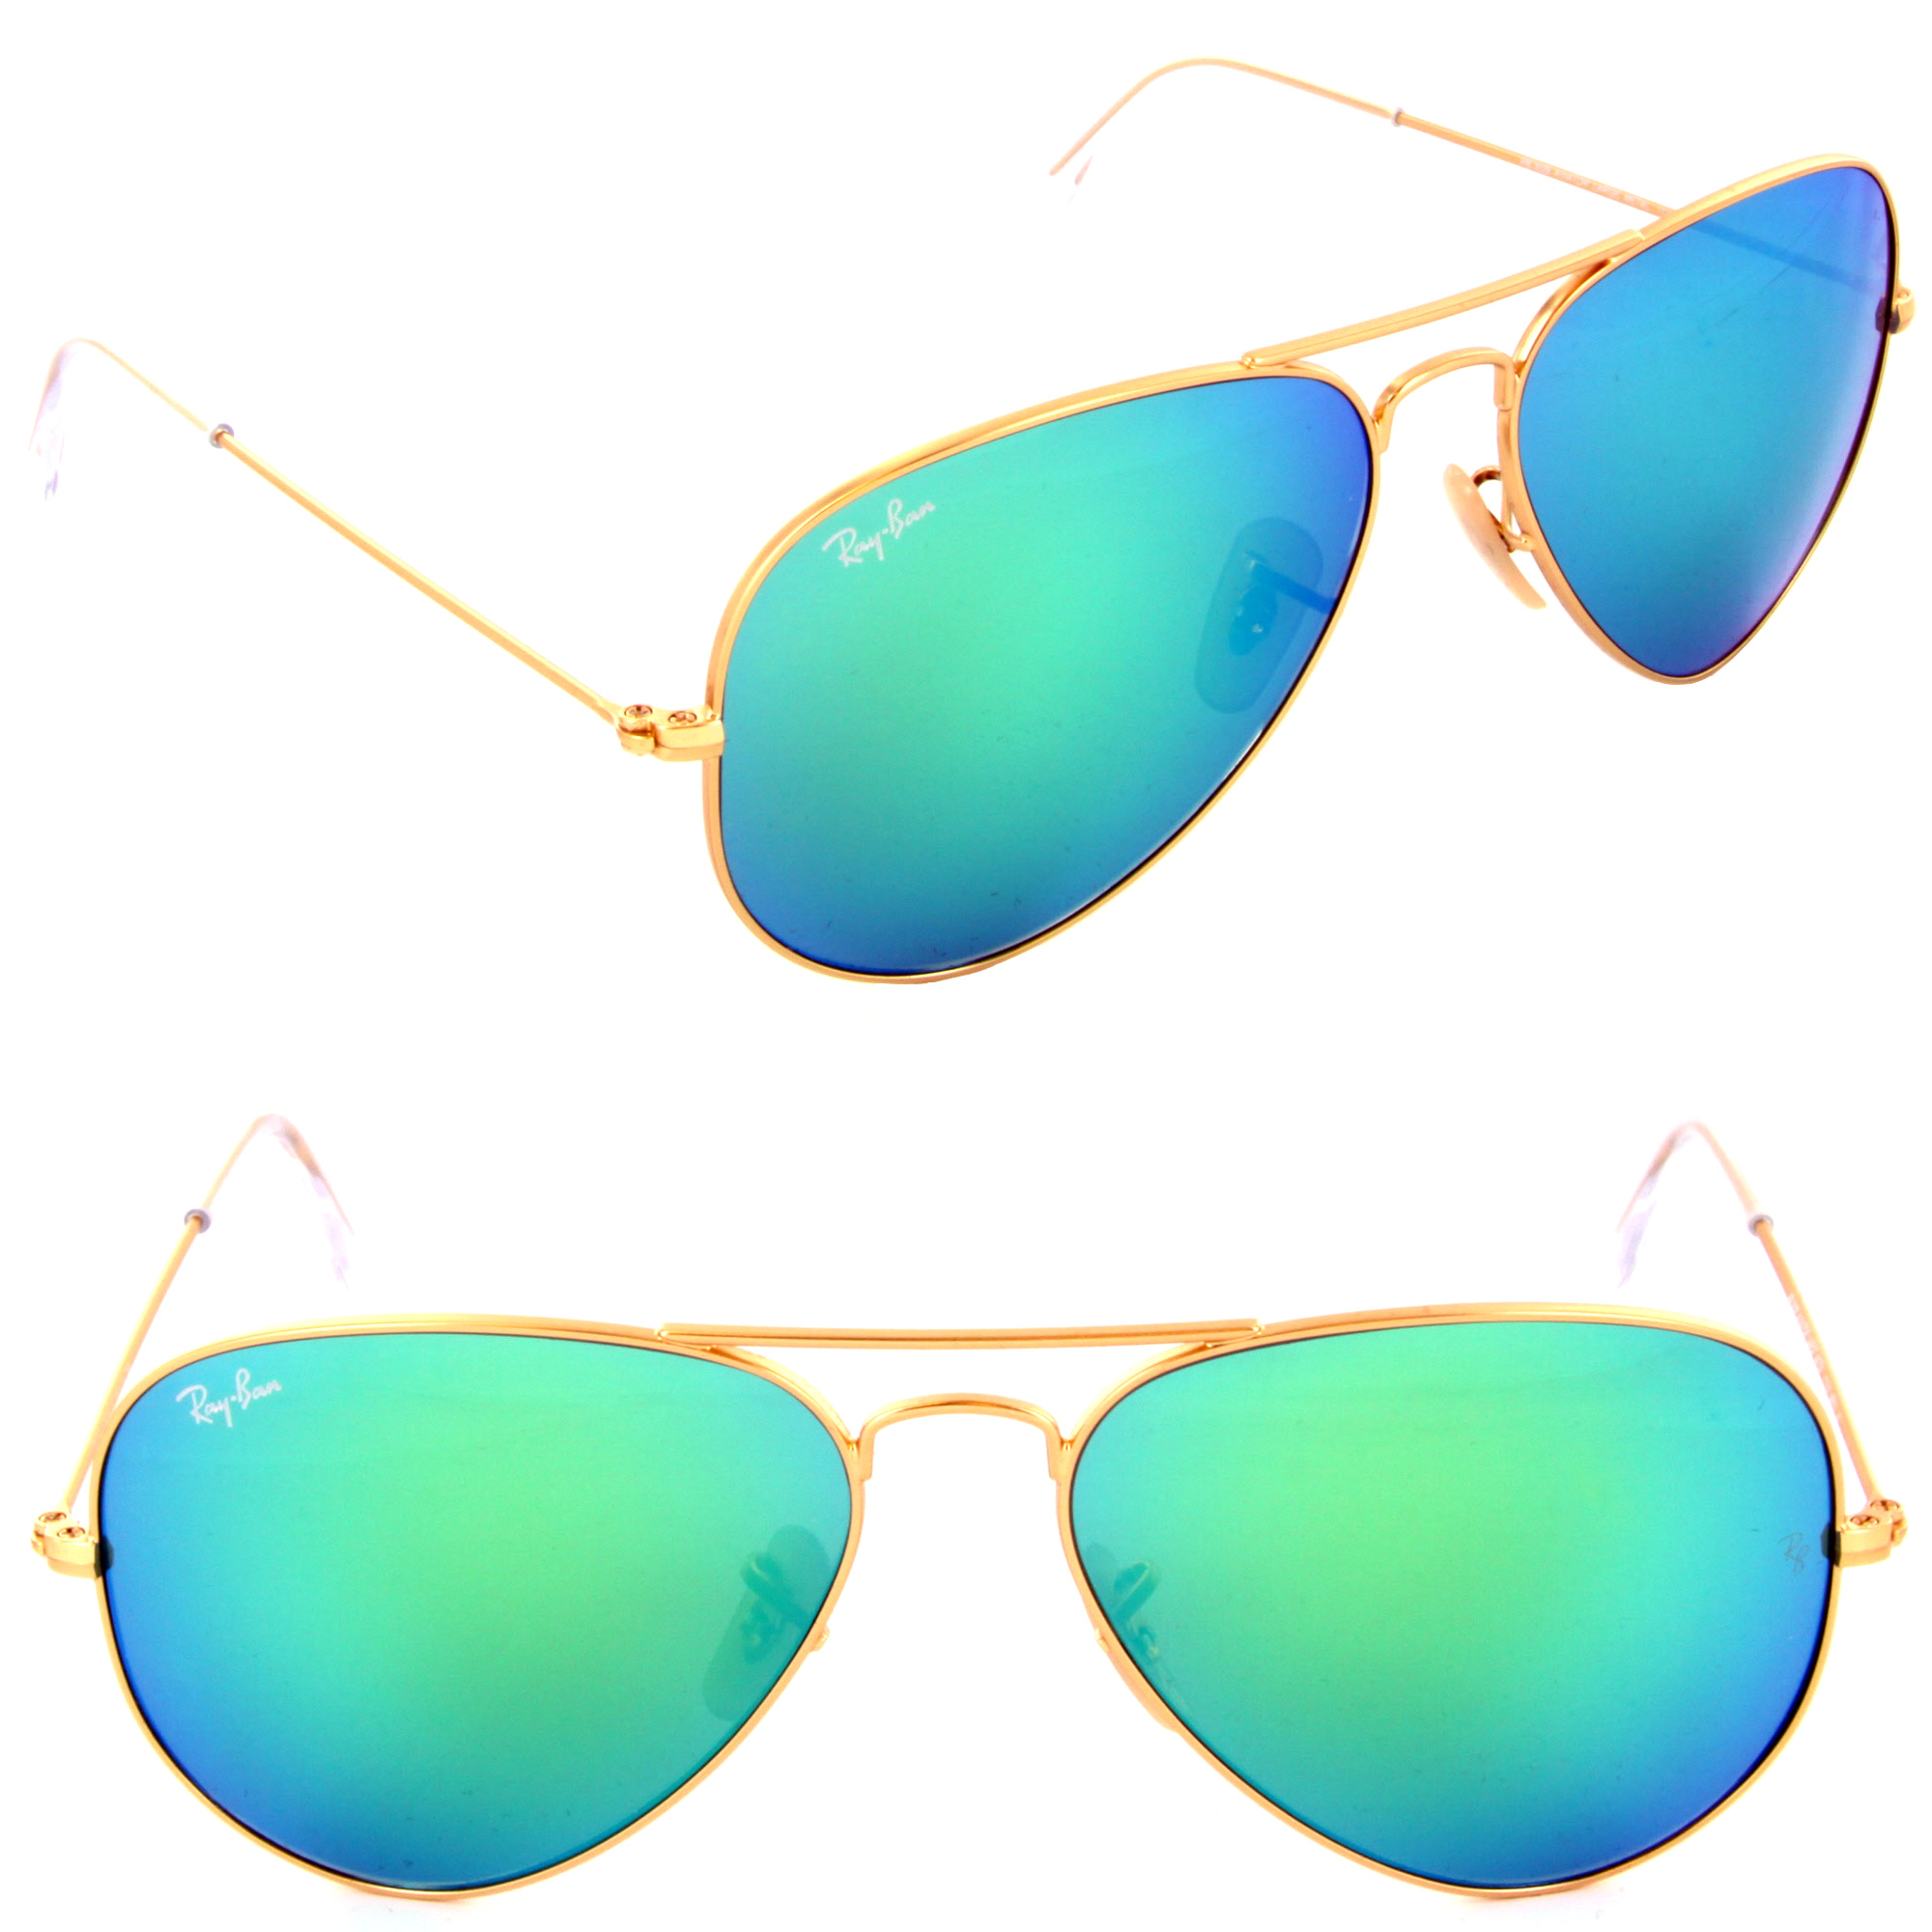 9fa9265544 Ray-Ban -- RB3025 Aviator glasses only  123.25. Add lenses for  14.95